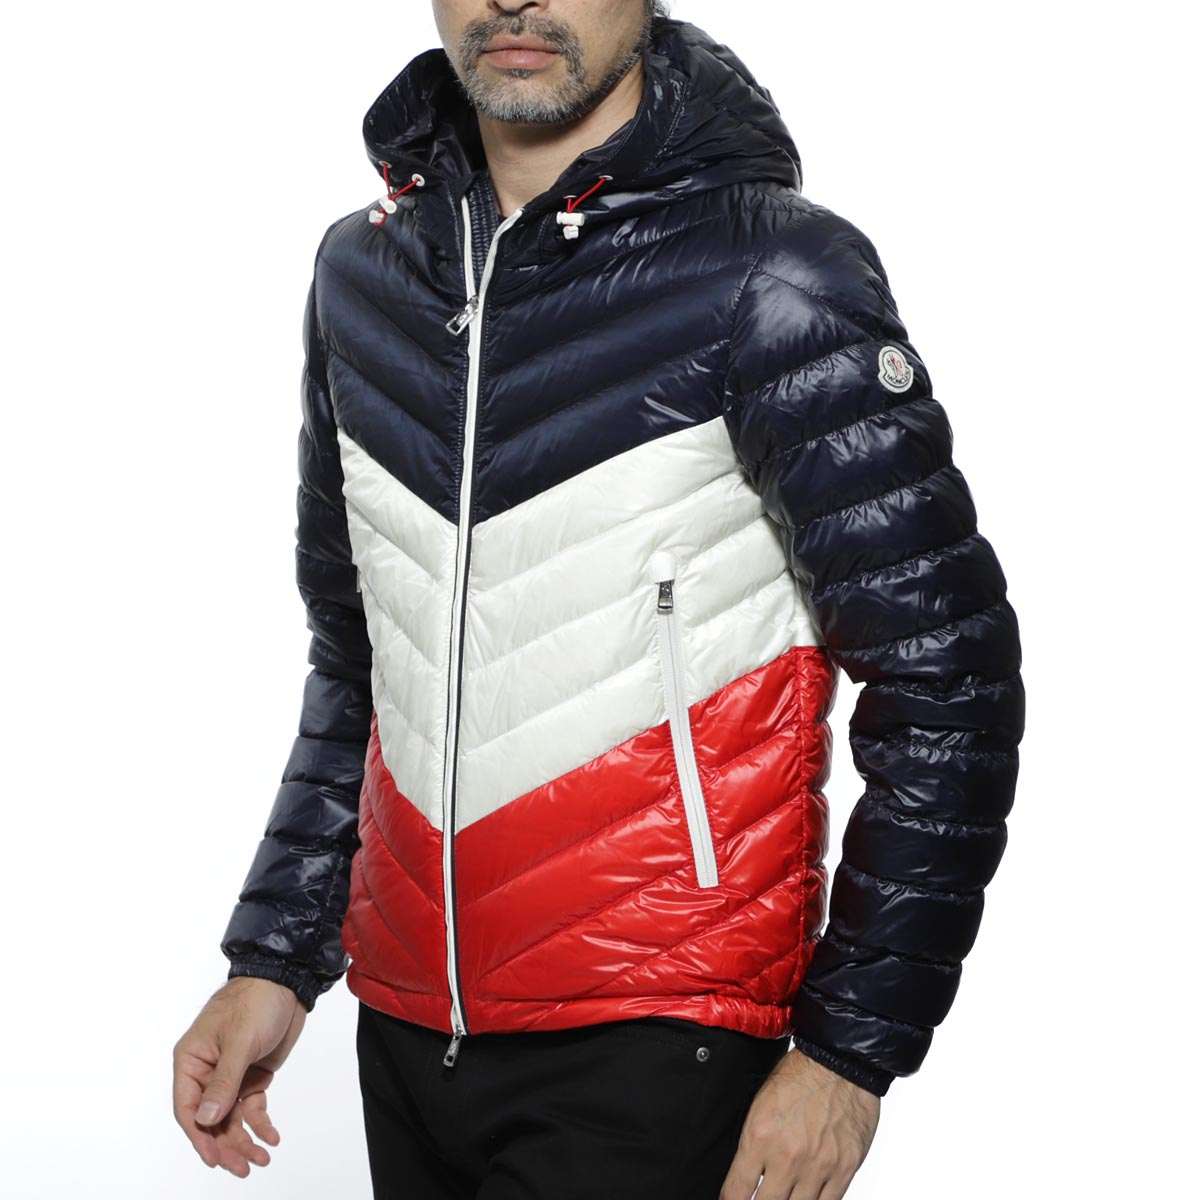 Monk rail MONCLER hooded down jacket multicolored men down outer goose down palliser 4030185 53029 776 PALLISER[outnew]